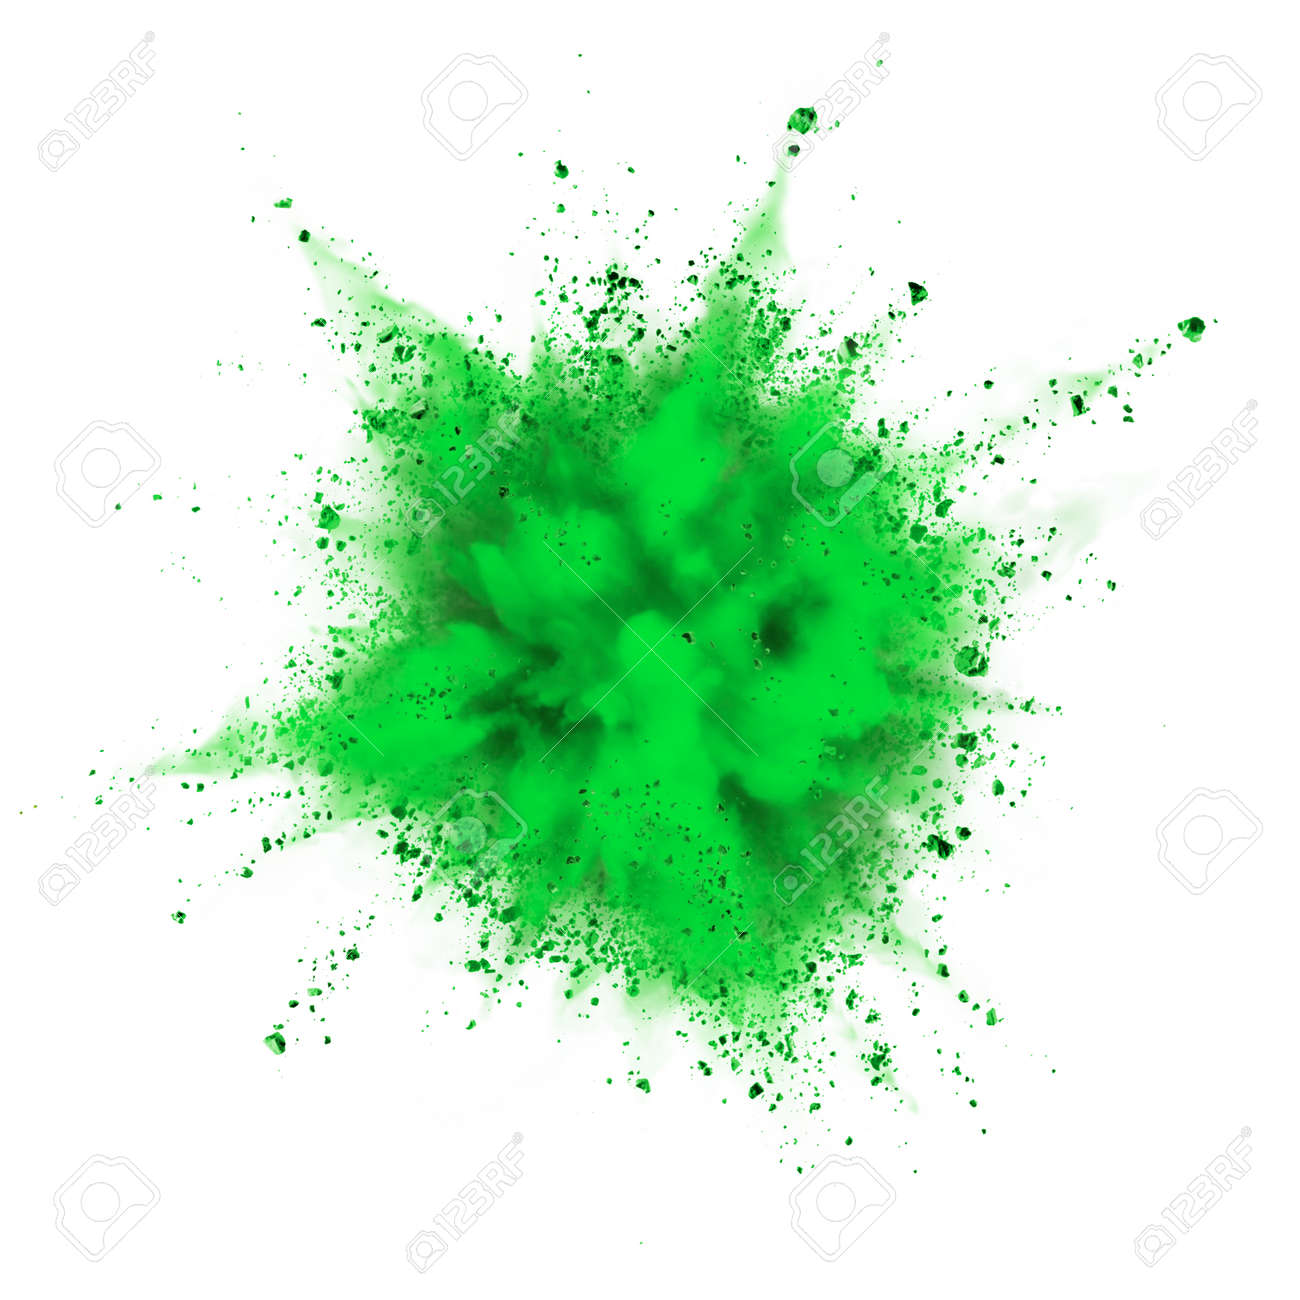 green powder explosion isolated on white background - 45945883